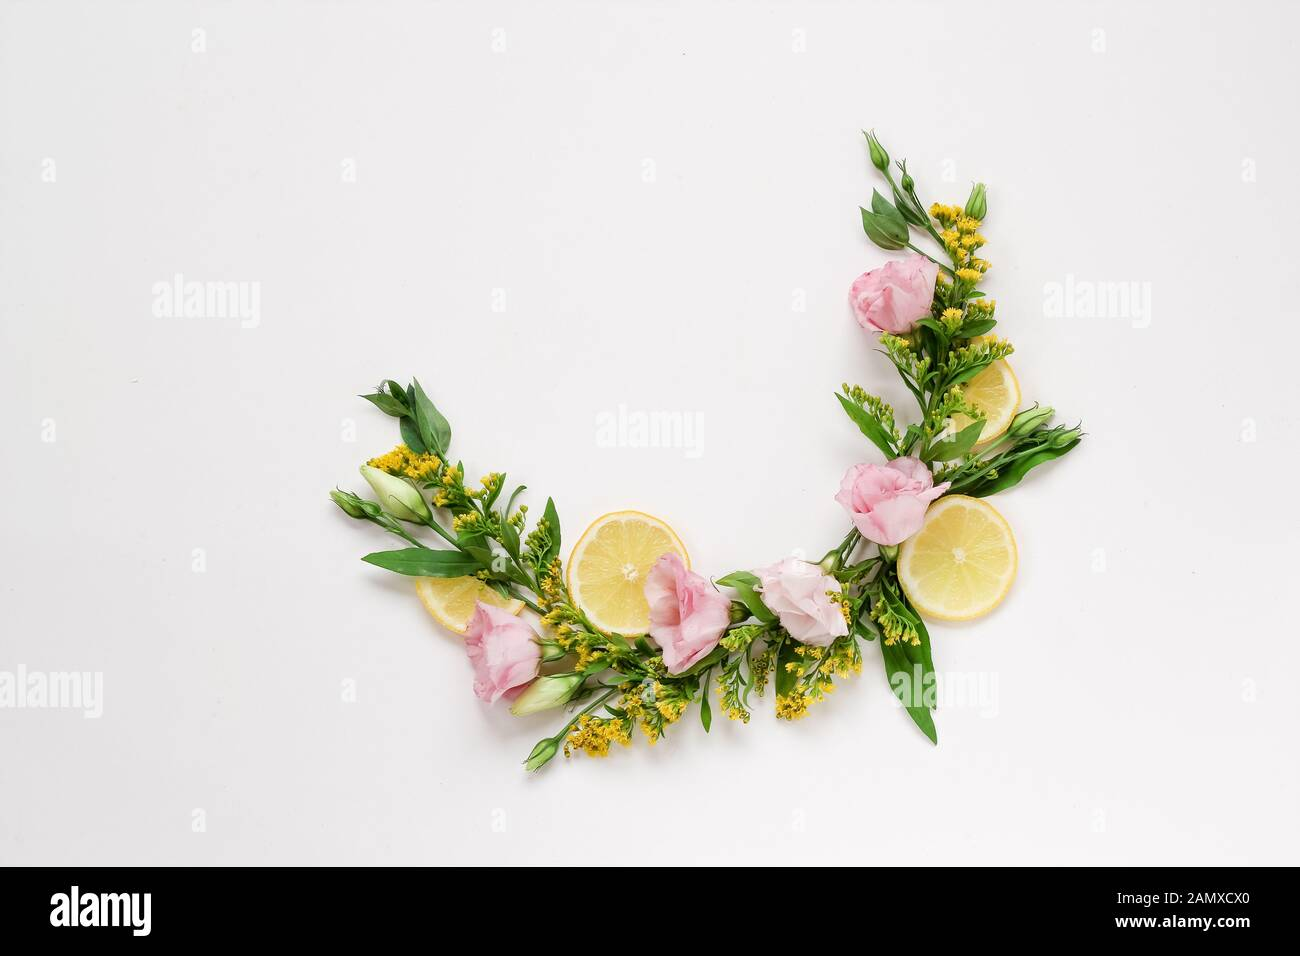 Creative arrangement of pink and yellow flowers with lemons on a white background with a copy space Stock Photo